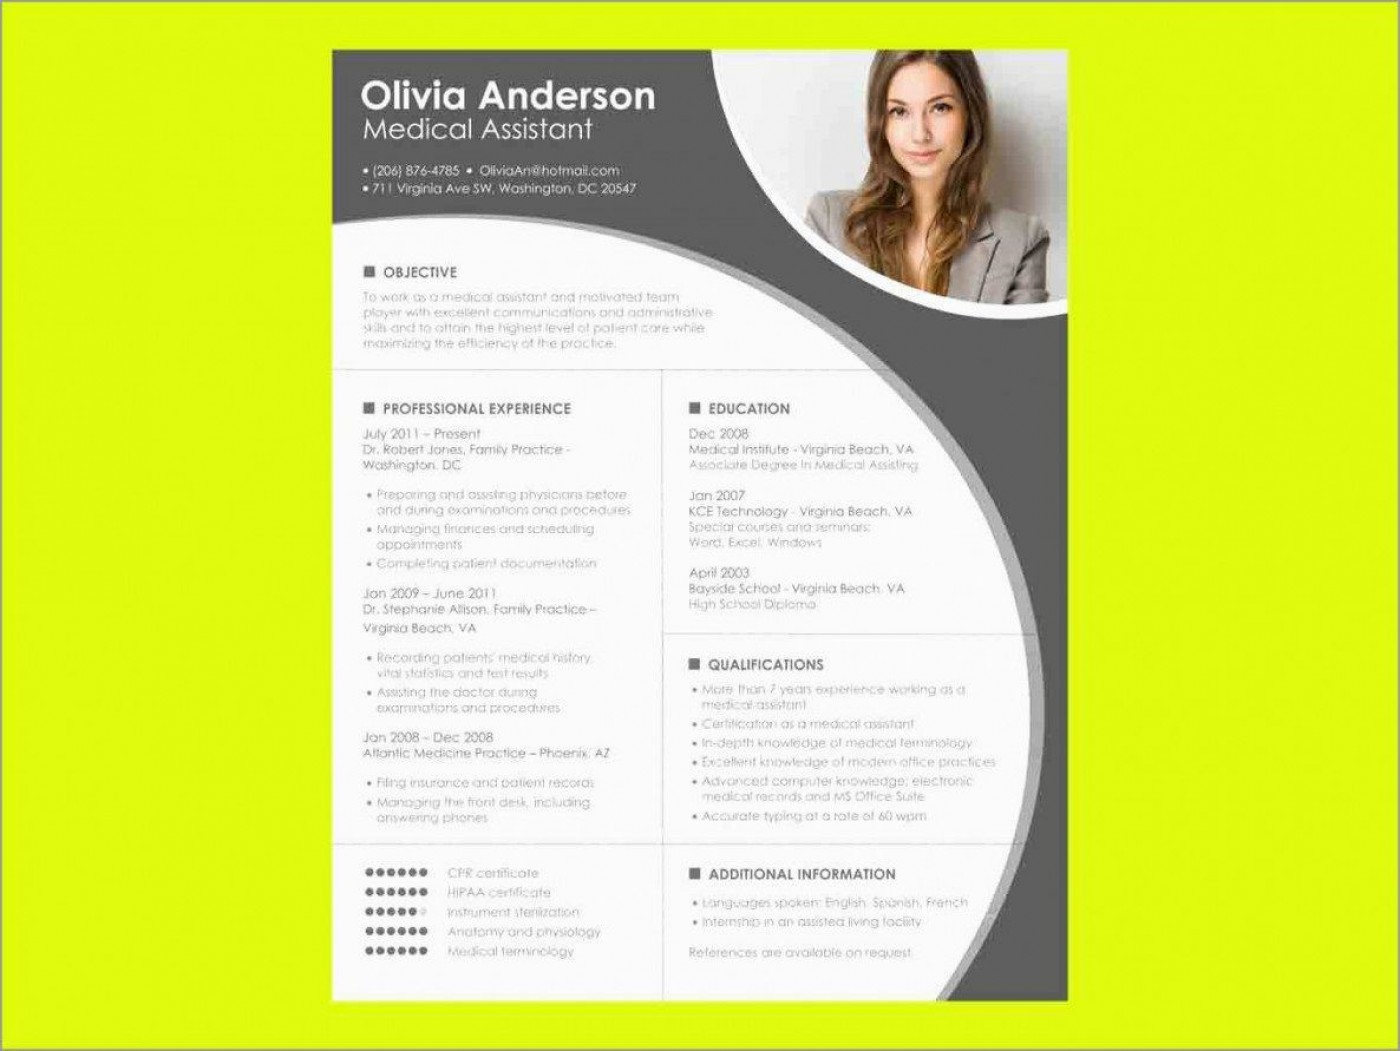 000 Formidable Download Resume Template Word 2007 Inspiration 1400